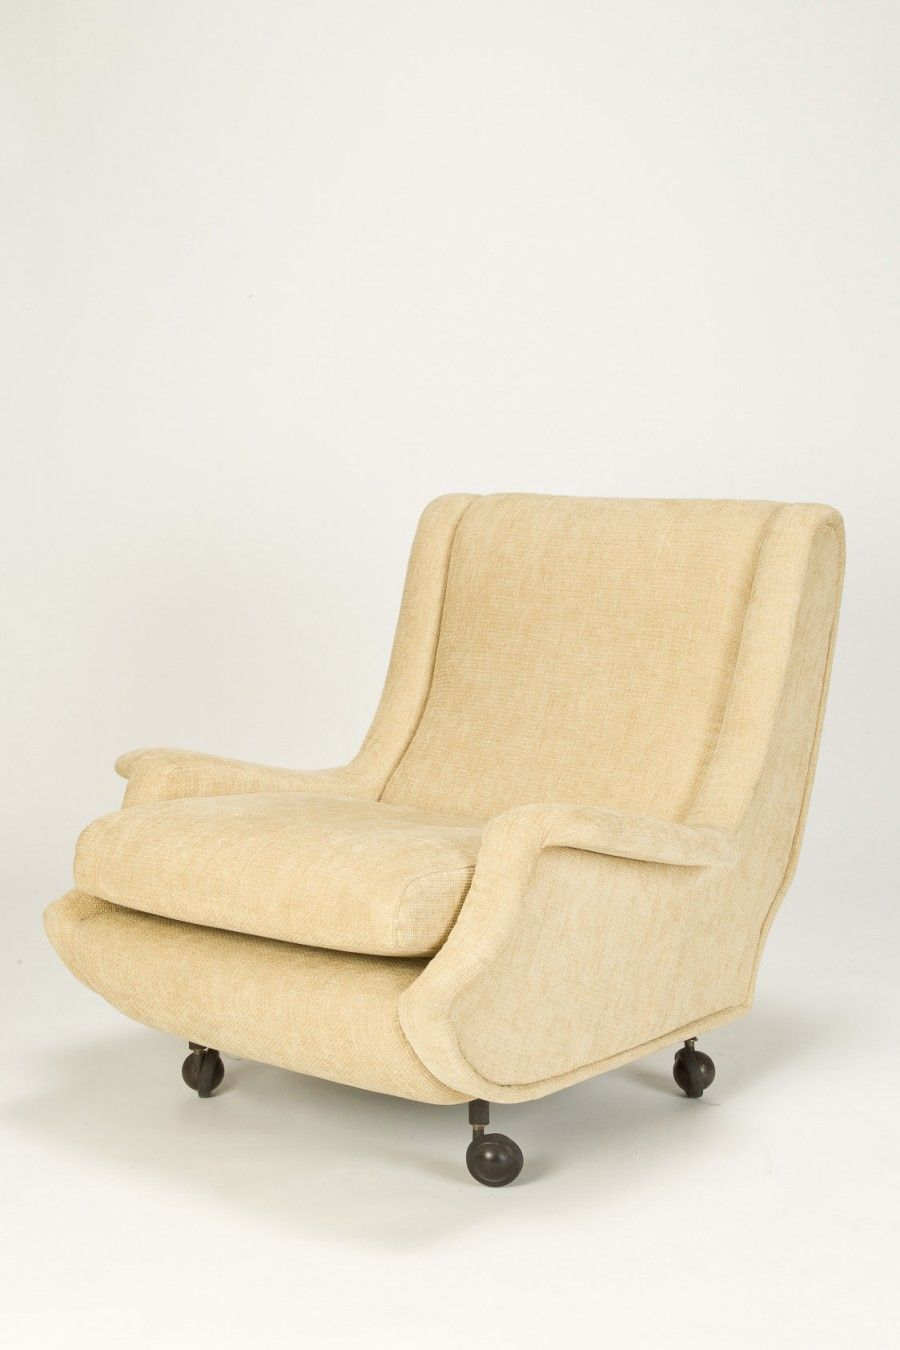 Marco Zanuso Regent Sessel Auf Rändern Okay Art Modern Style Furniture Mid Century Modern Chair Upholstered Arm Chair